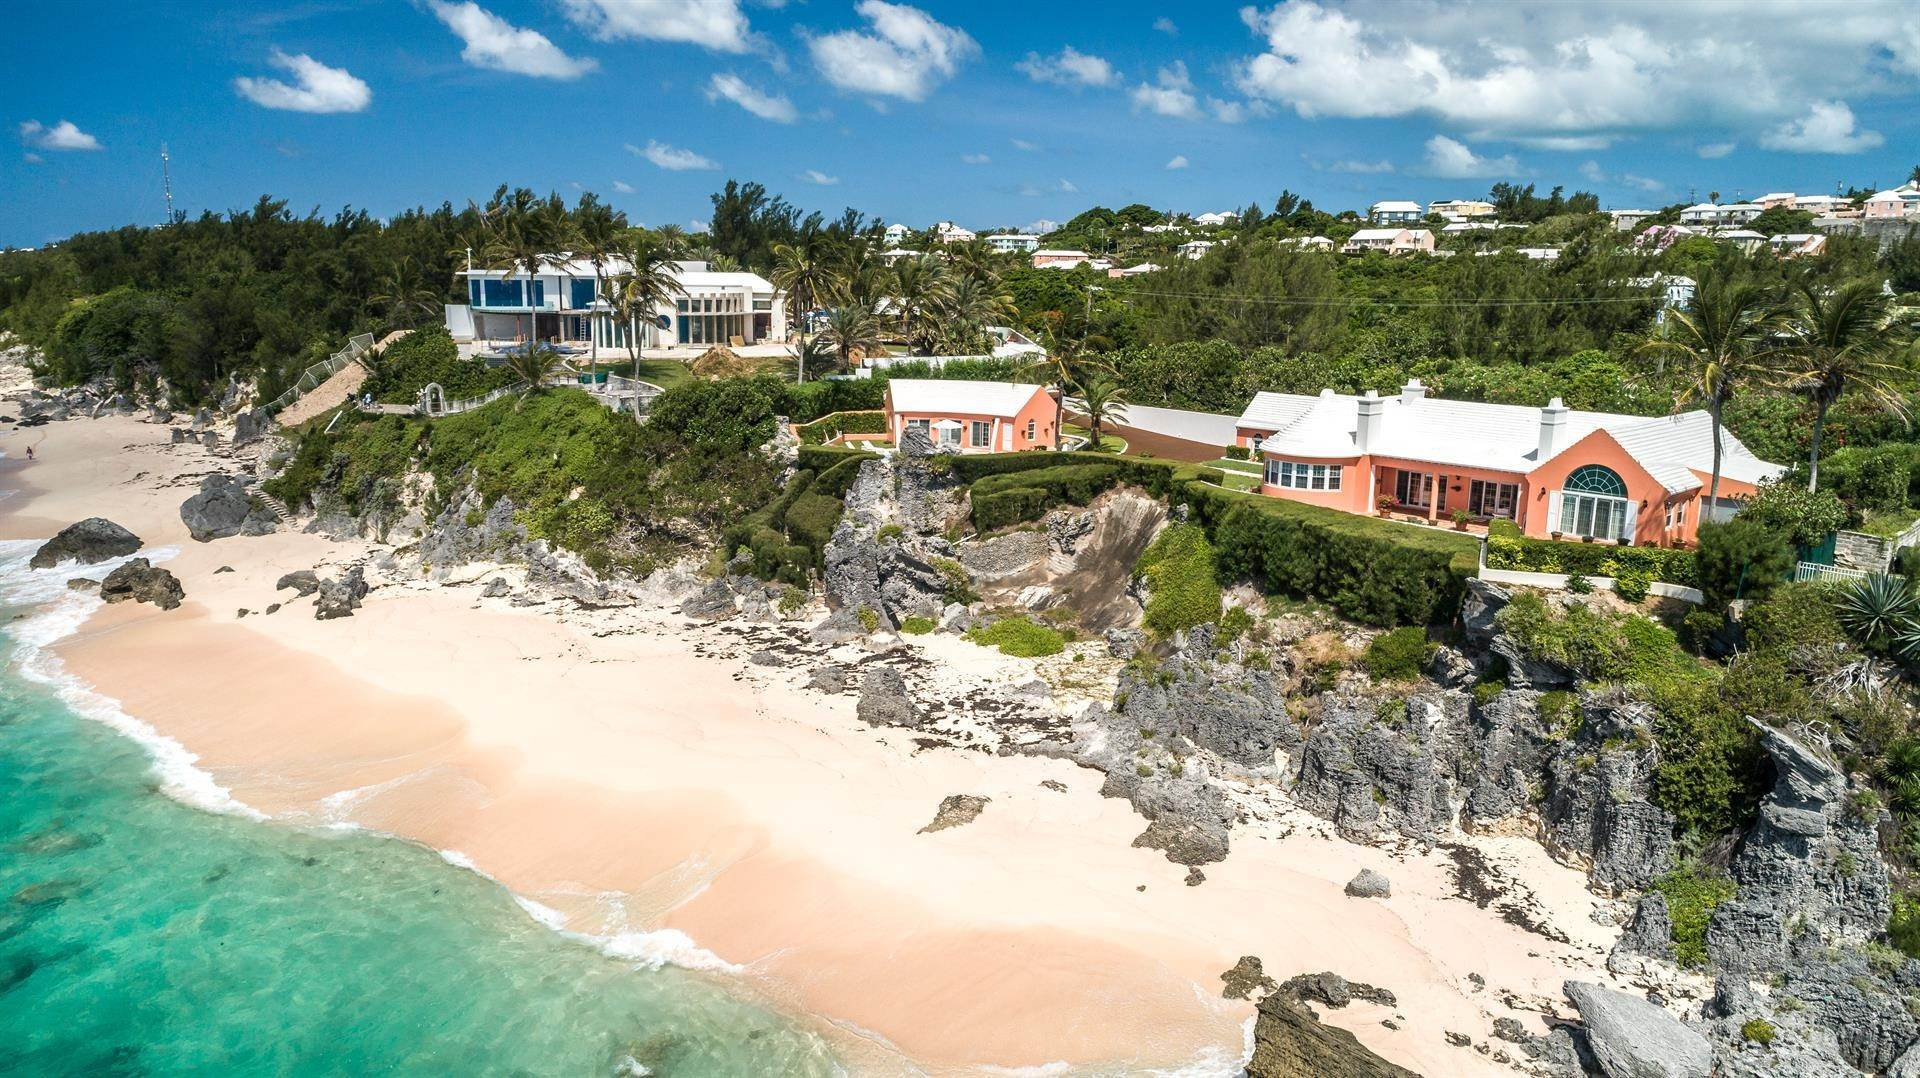 5. Beachfront Property at Sandcastles On The Beach 24 South Road, Warwick Parish, Bermuda WK02 Bermuda